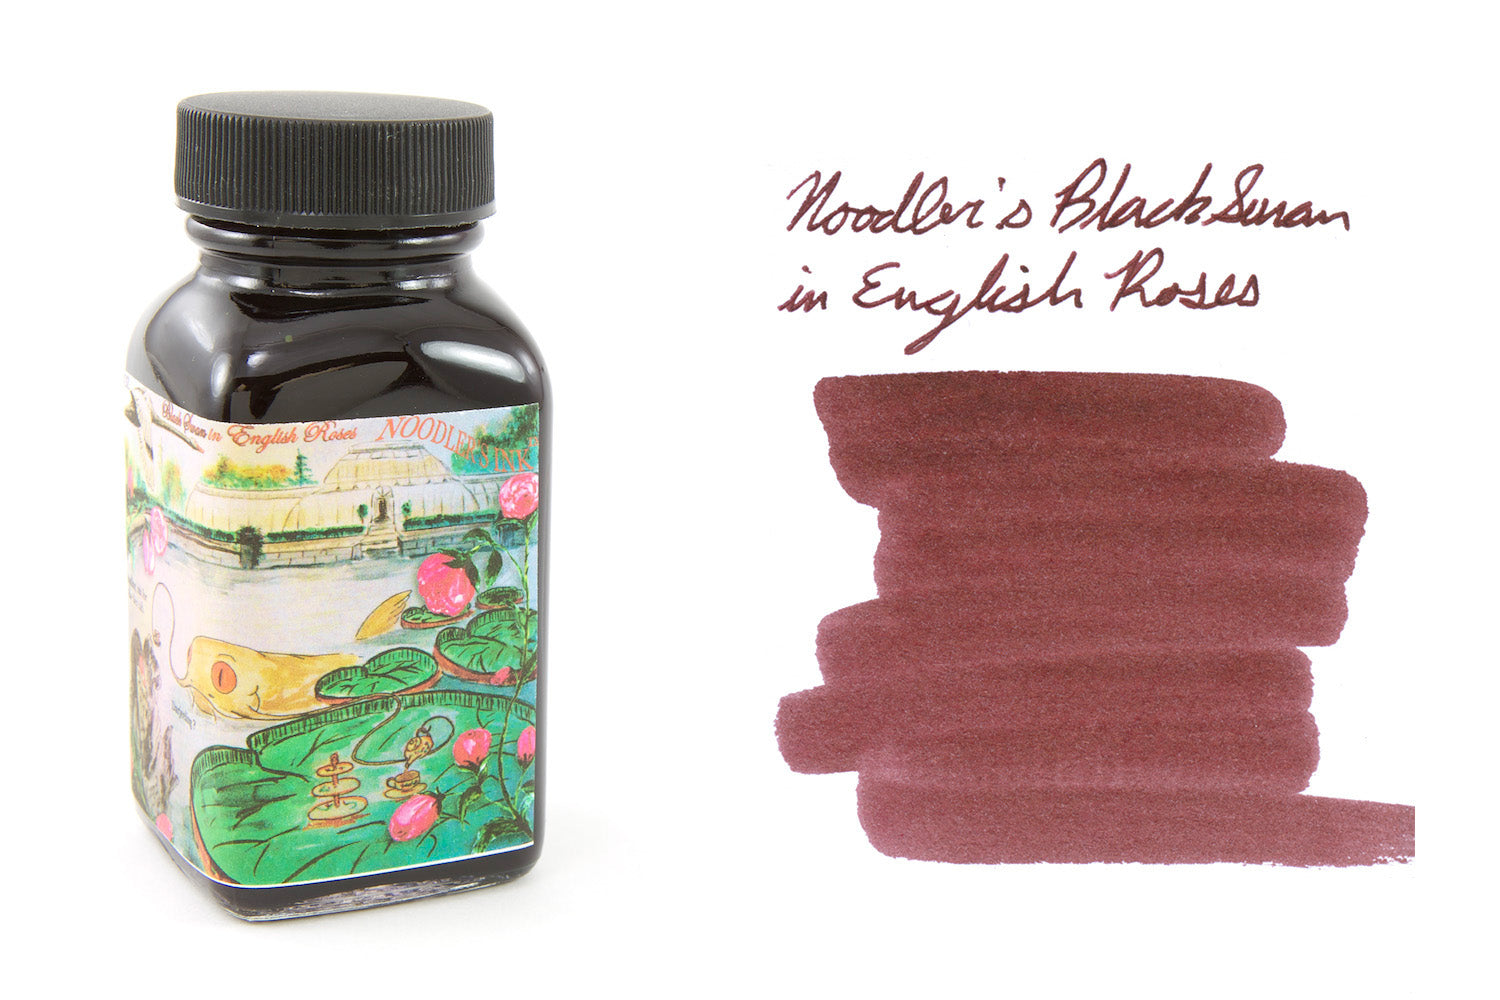 Noodler's Black Swan in English Roses - 3oz Bottled Ink